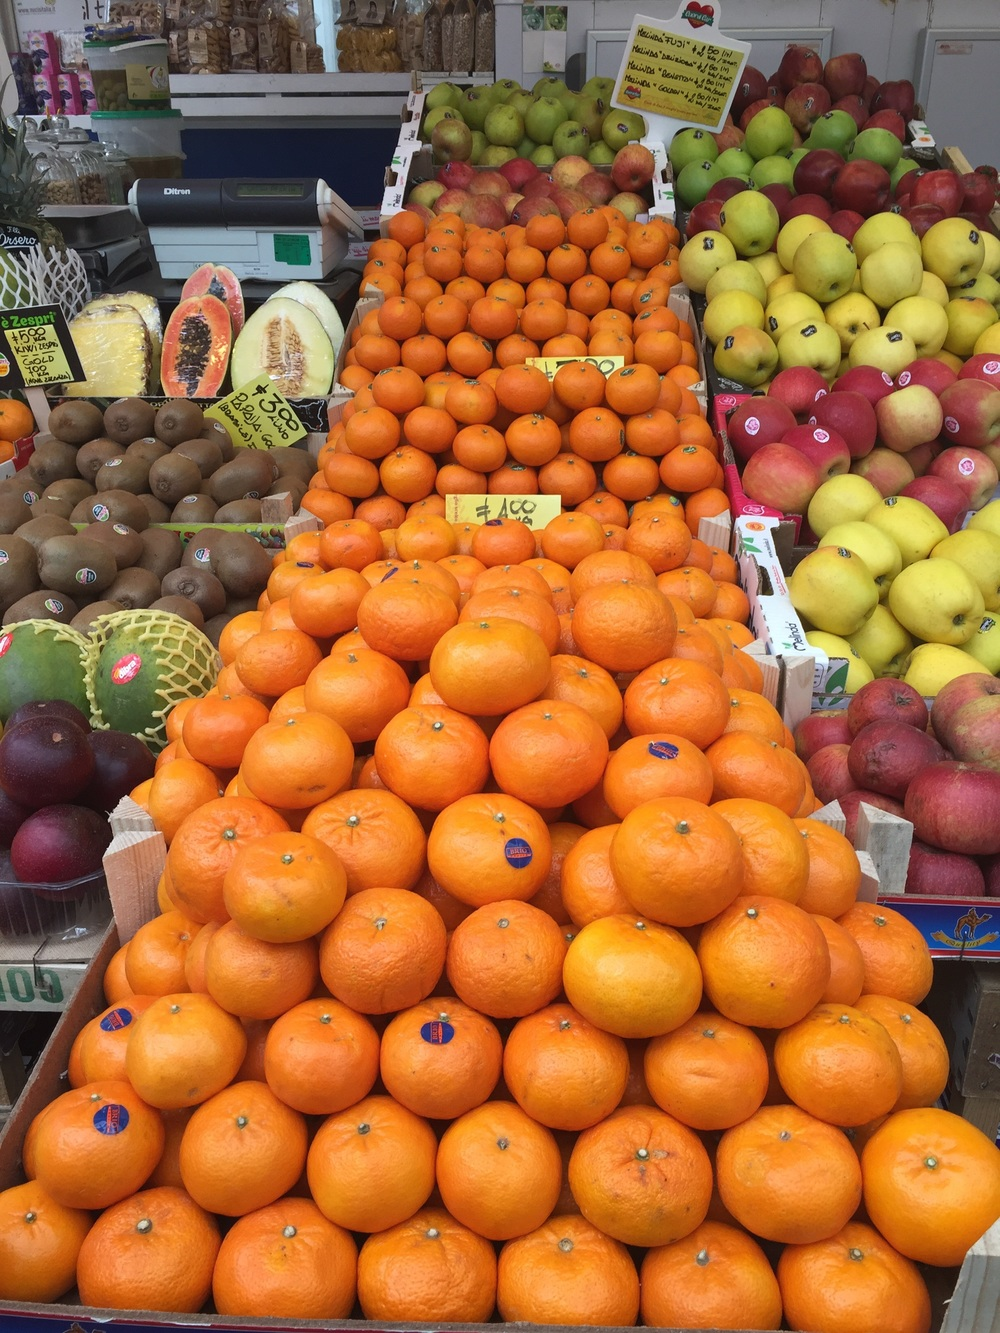 Oranges at a market.